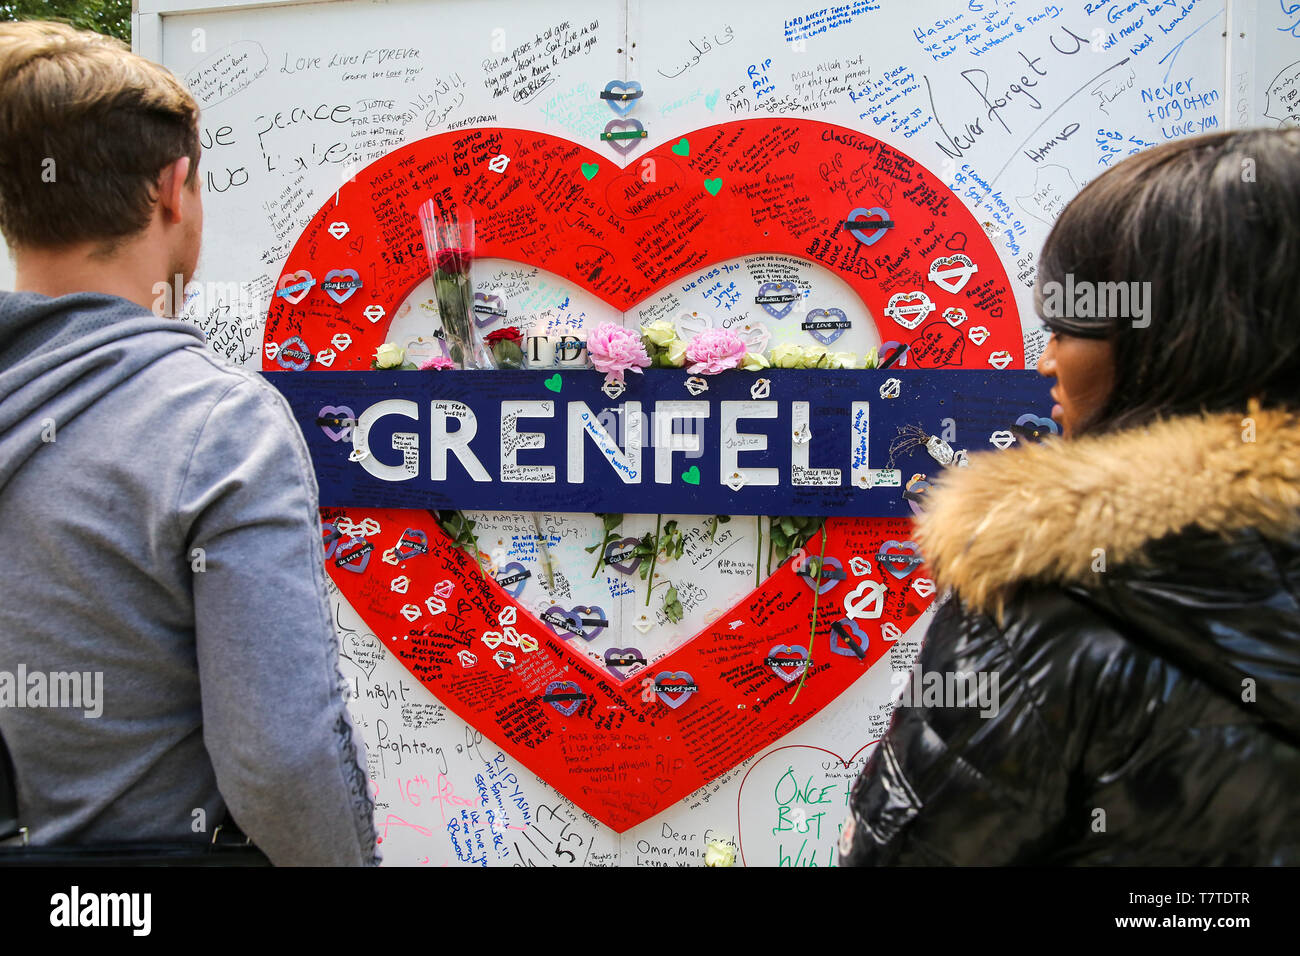 June 14, 2018 - London, United Kingdom - People seen looking at a Grenfell placard..On 14 June 2017, a fire broke out in the 24-storey Grenfell Tower block of flats in North Kensington, West London where 72 people died, more than 70 others were injured and 223 people escaped..The UK Government is to fund an estimated £200 million to replacement of unsafe Grenfell style cladding on around 170 high-rise private residential buildings after private building owners failed to take action. Communities Secretary James Brokenshire said inaction from building owners had compelled the government to act. Stock Photo